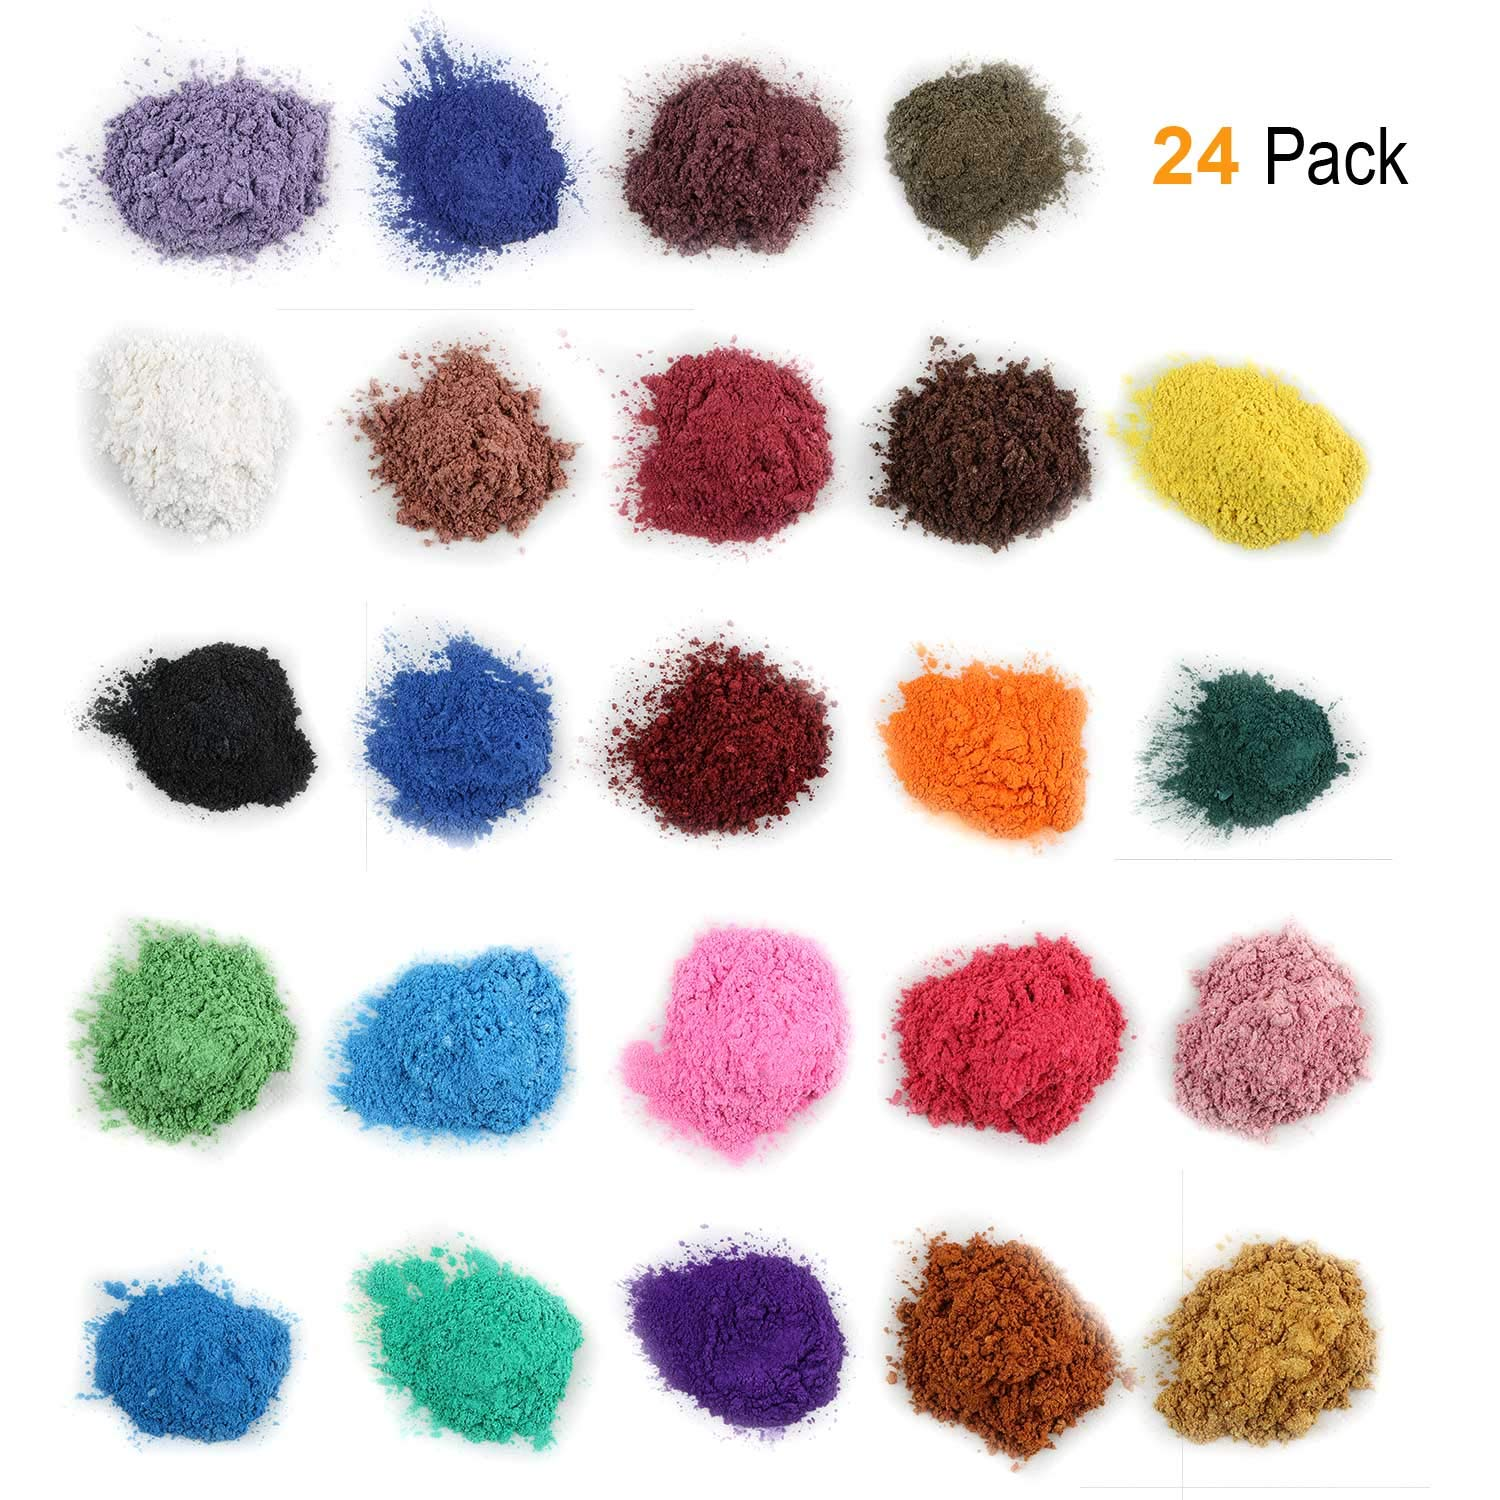 Mica Powder for Bath Bombs [0.18 oz 24 Bags], Cosmetic Grade Soap Making Colorant Pigments for Candle Making, Blush, Eye Shadow, Craft Projects, Nail Art, Resin Jewelry, Blush, Craft Projects